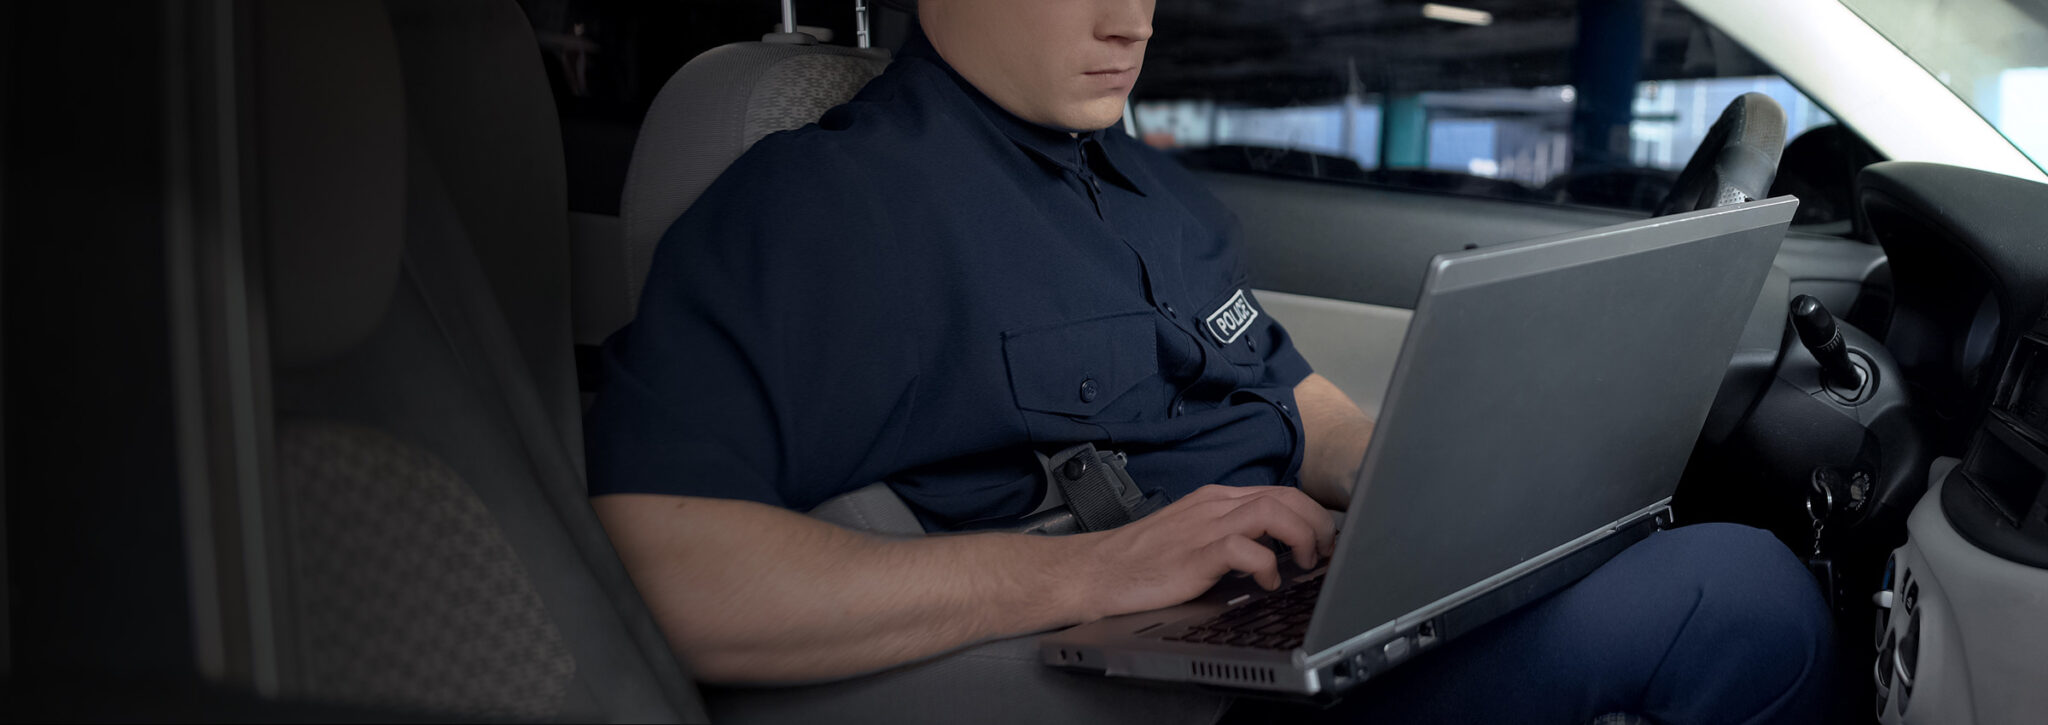 Police officer sitting in car on a laptop